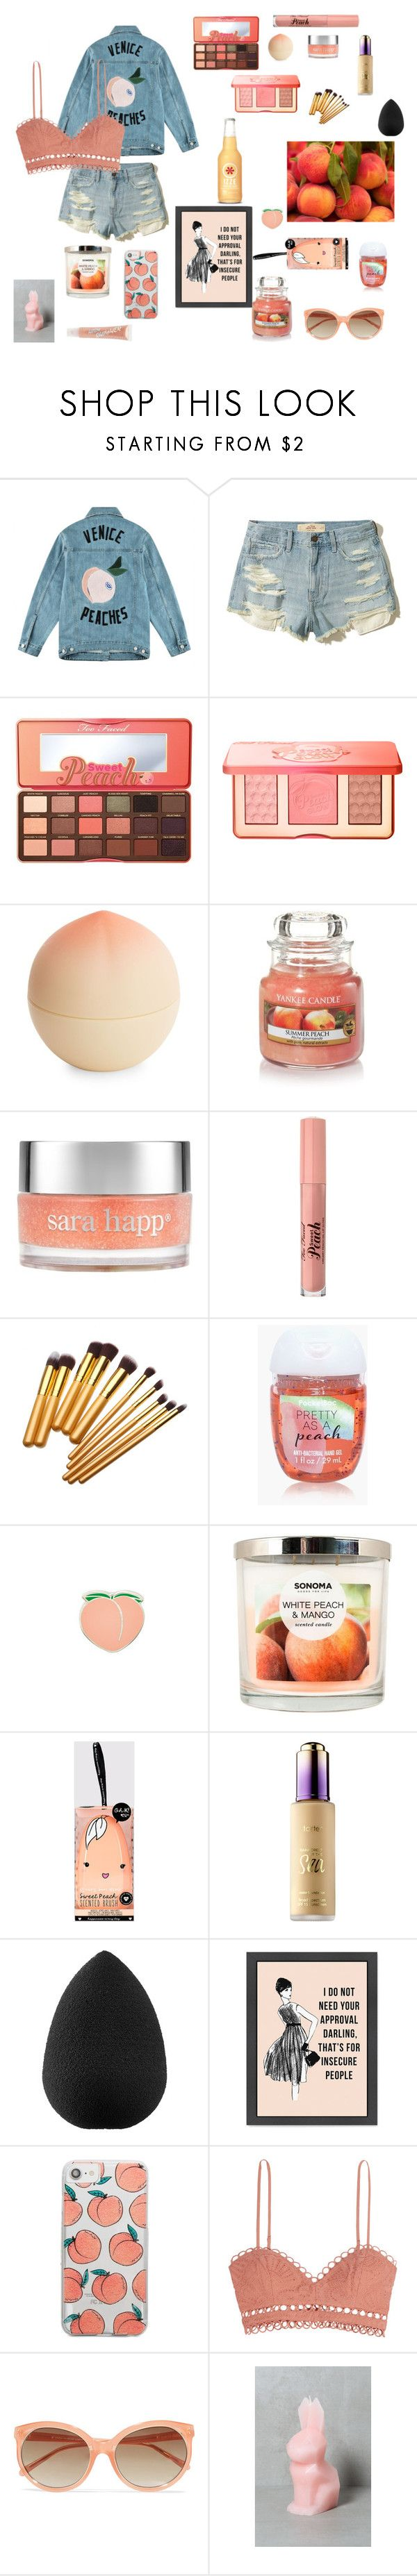 """""""Peaches🍑"""" by beebooonbroadway ❤ liked on Polyvore featuring Être Cécile, Hollister Co., Too Faced Cosmetics, Tony Moly, Yankee Candle, Sara Happ, PINTRILL, SONOMA Goods for Life, tarte and beautyblender"""